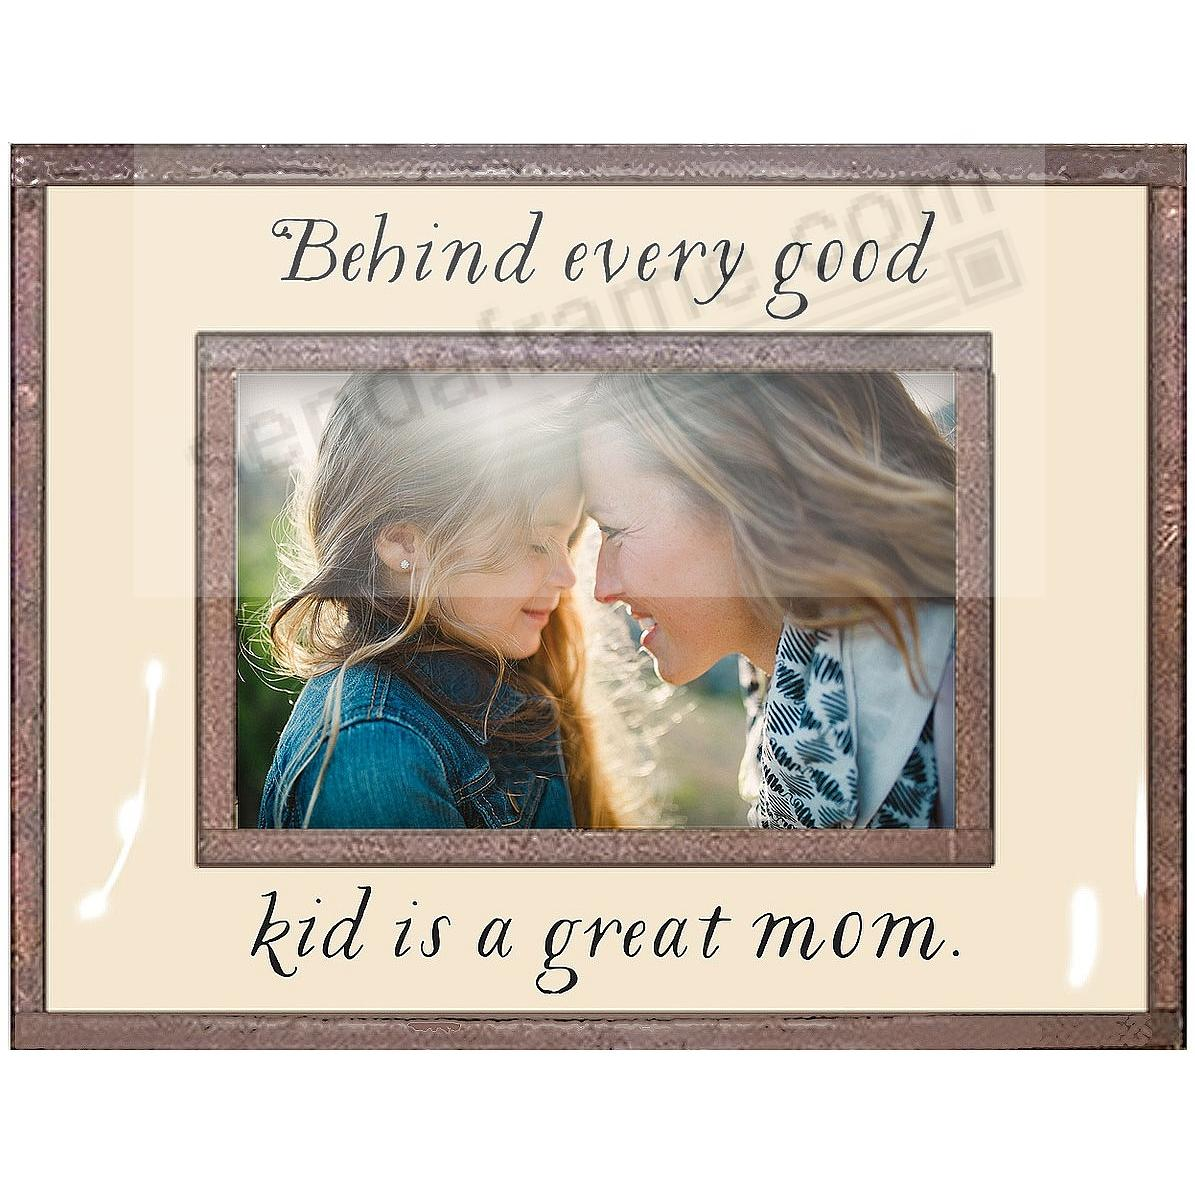 BEHIND EVERY GOOD KID IS A GREAT MOM Copper + Clear Glass by Ben's Garden®